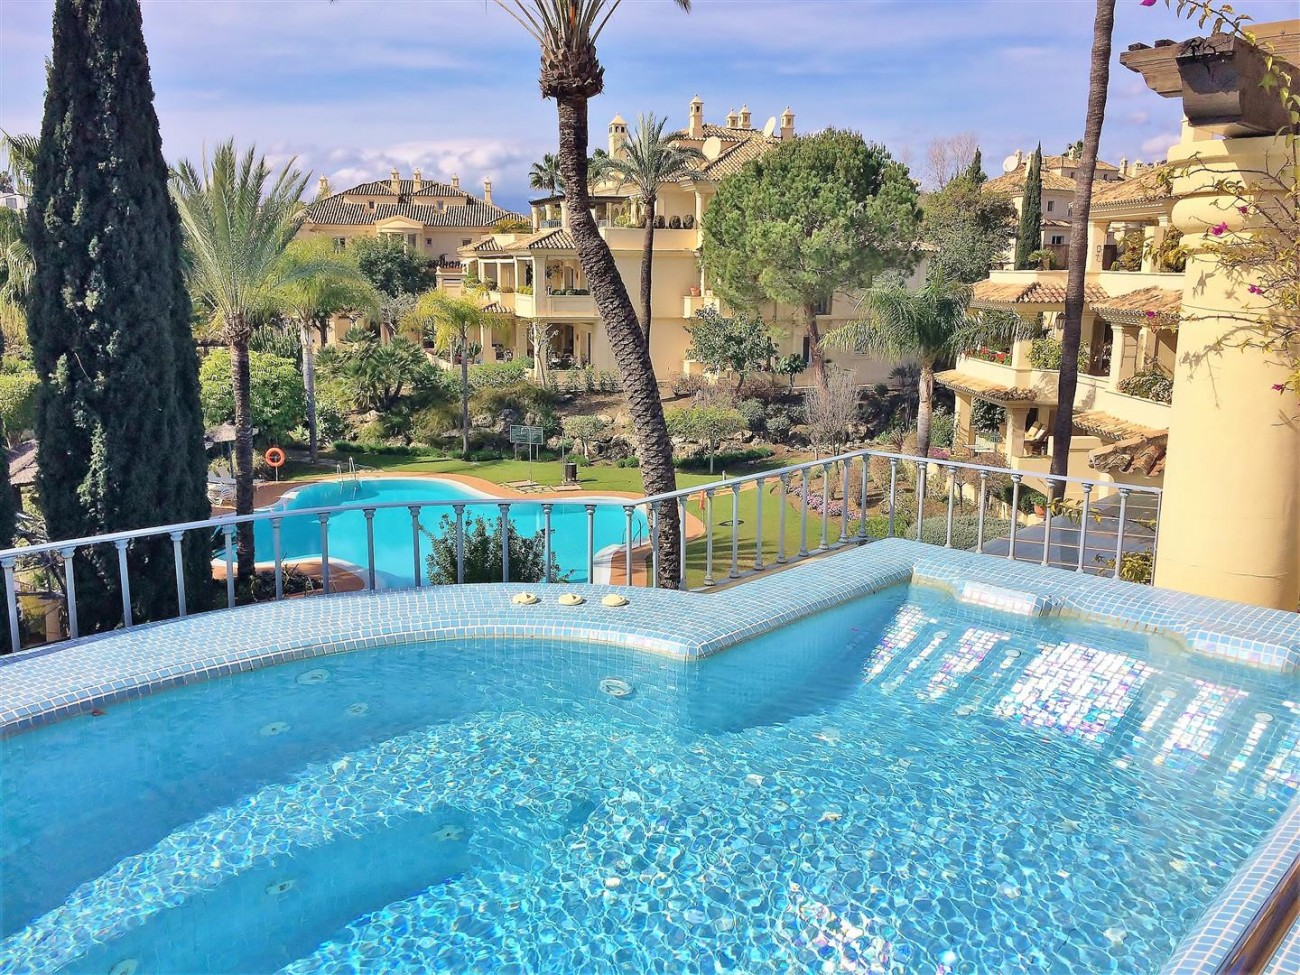 Penthouse for sale Las Alamandas Nueva Andalucia Marbella Spain (20) (Large)